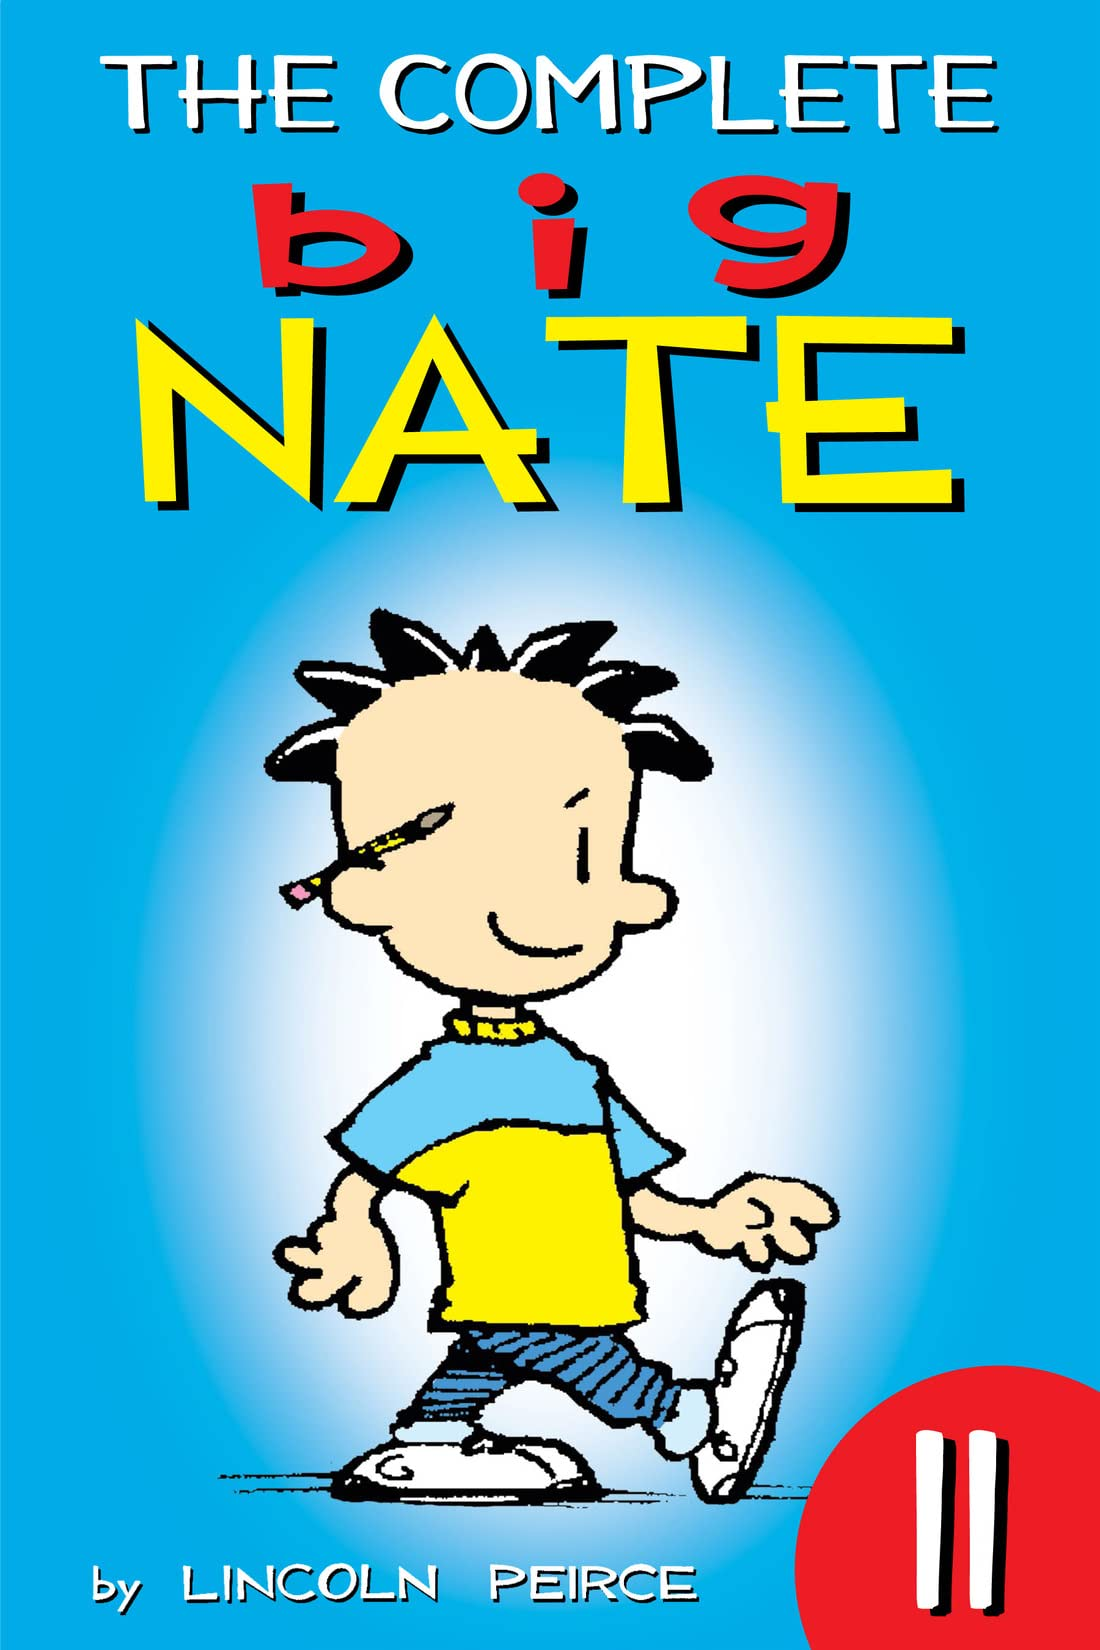 The Complete Big Nate Vol. 11